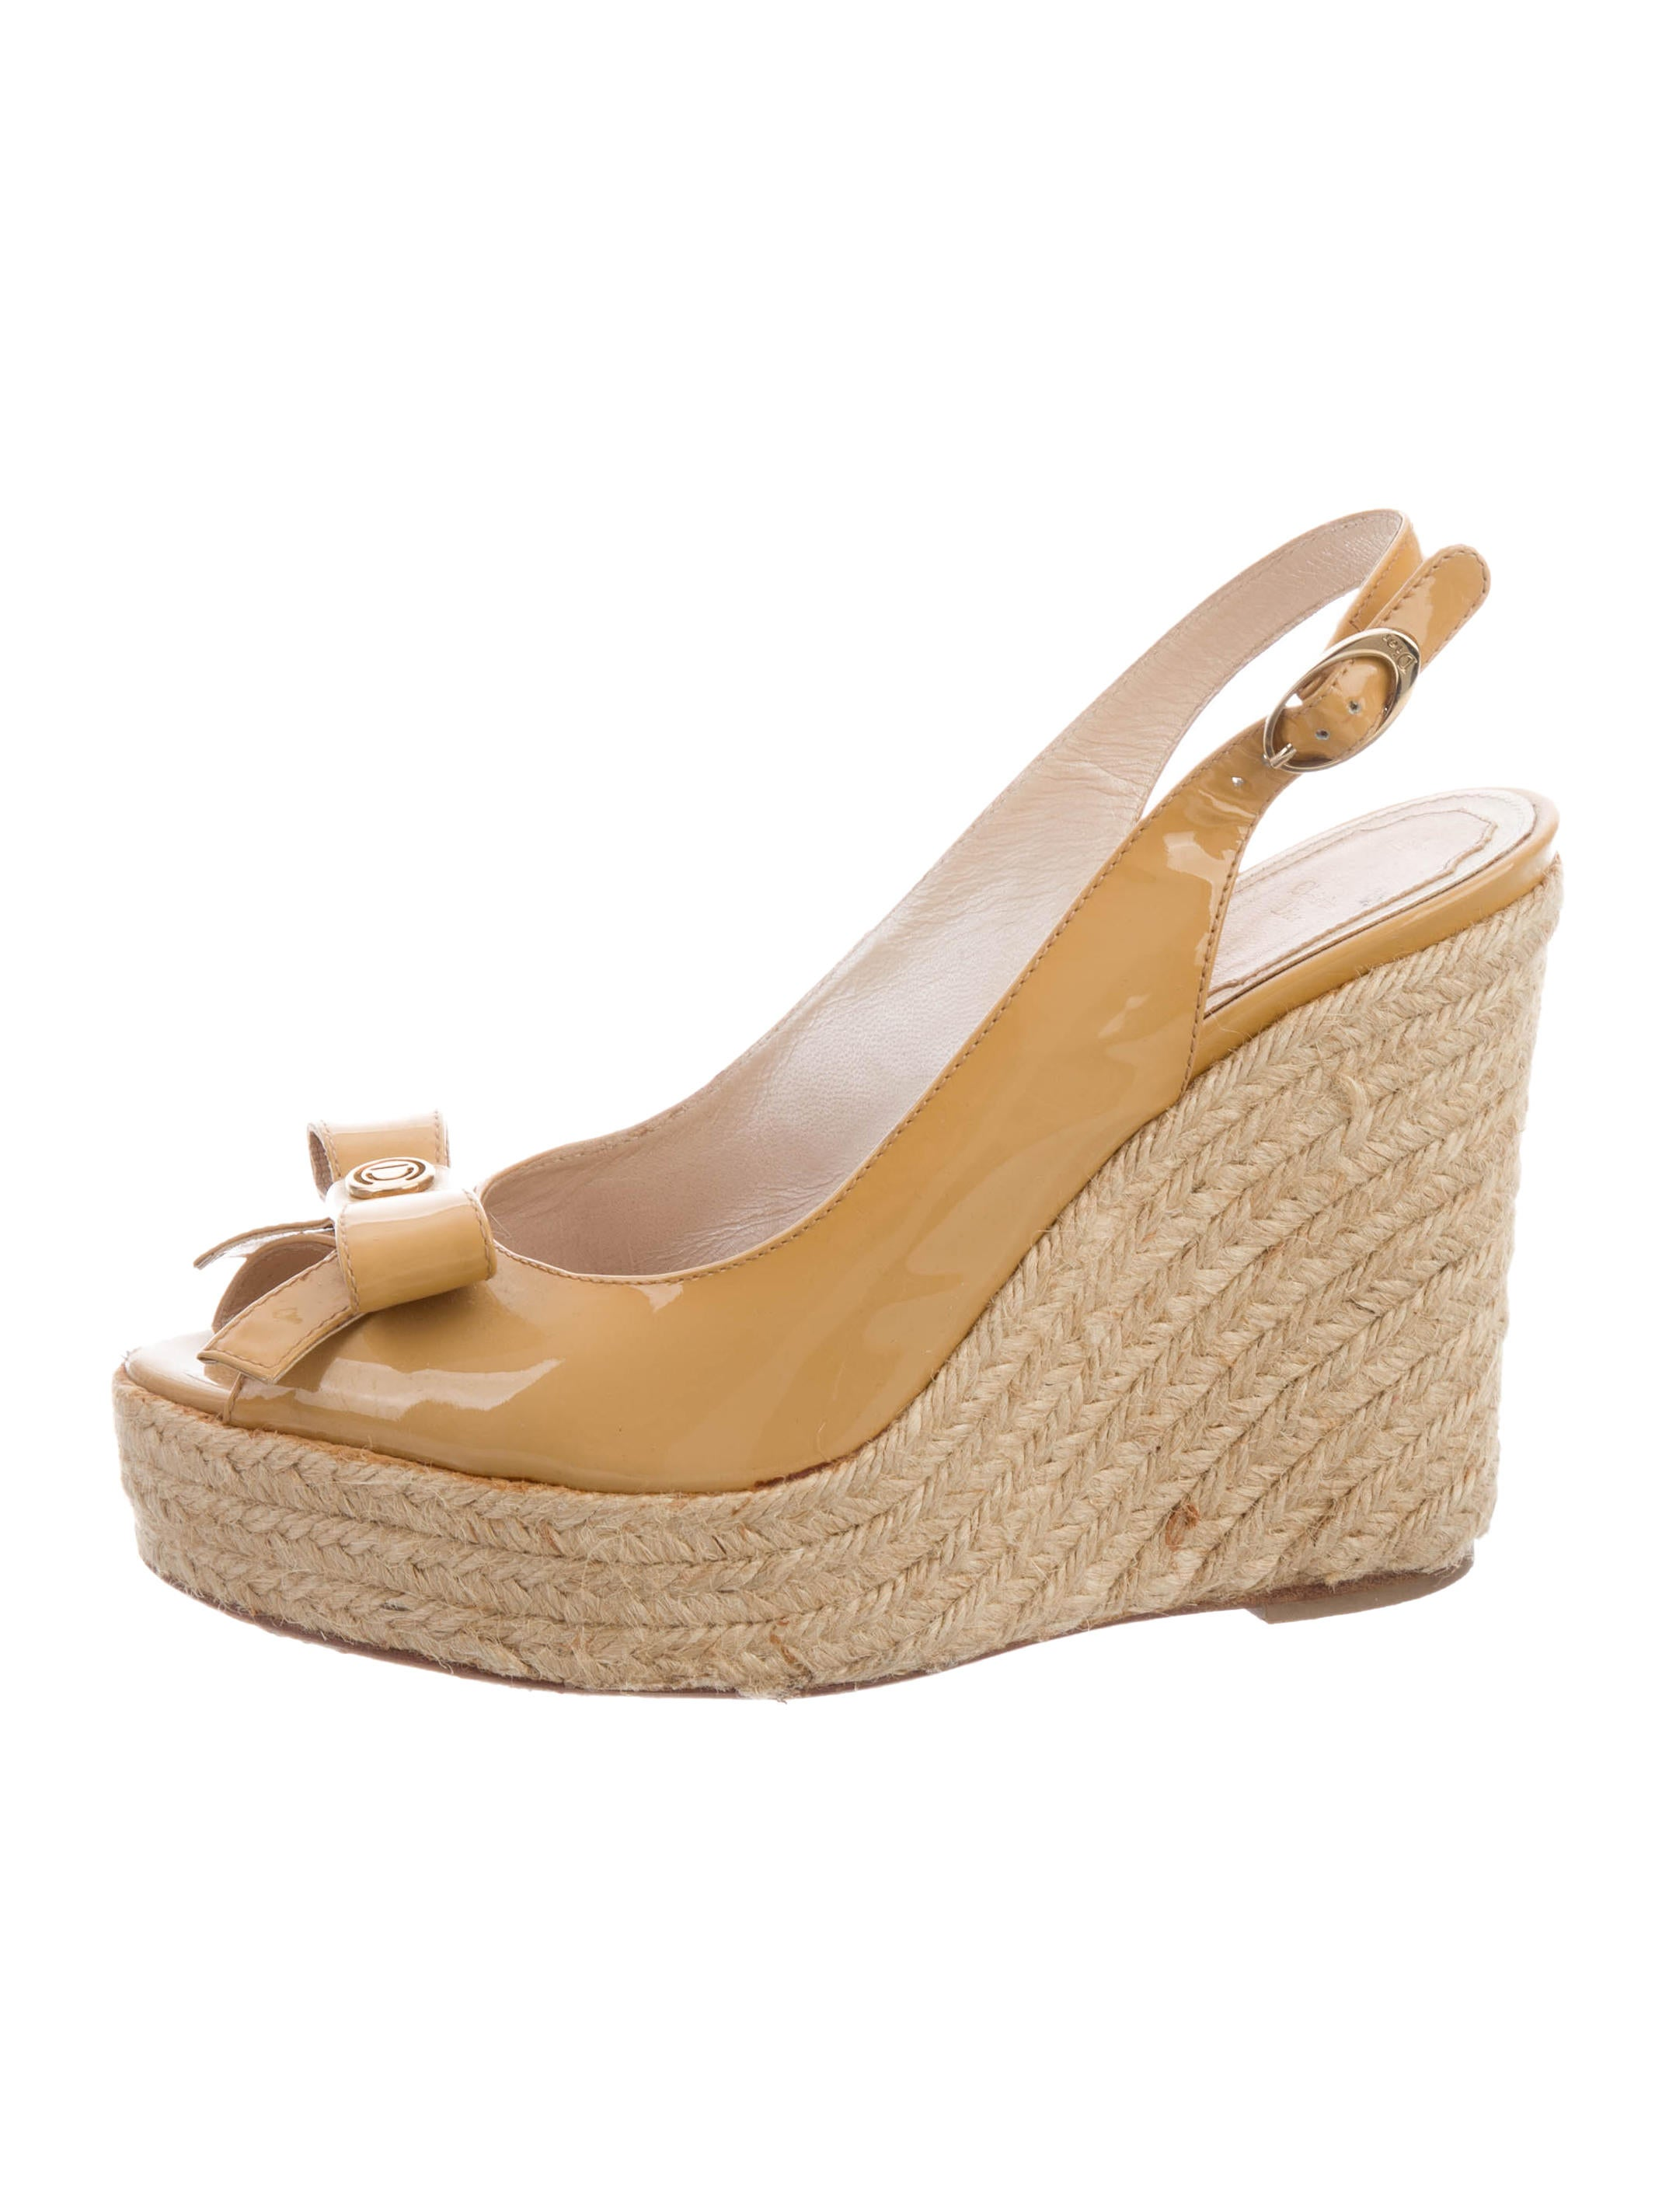 Christian Dior Patent Leather Espadrille Wedges cheap price in China clearance big sale discounts cheap online geniue stockist cheap online visit 7rlSkTx92N